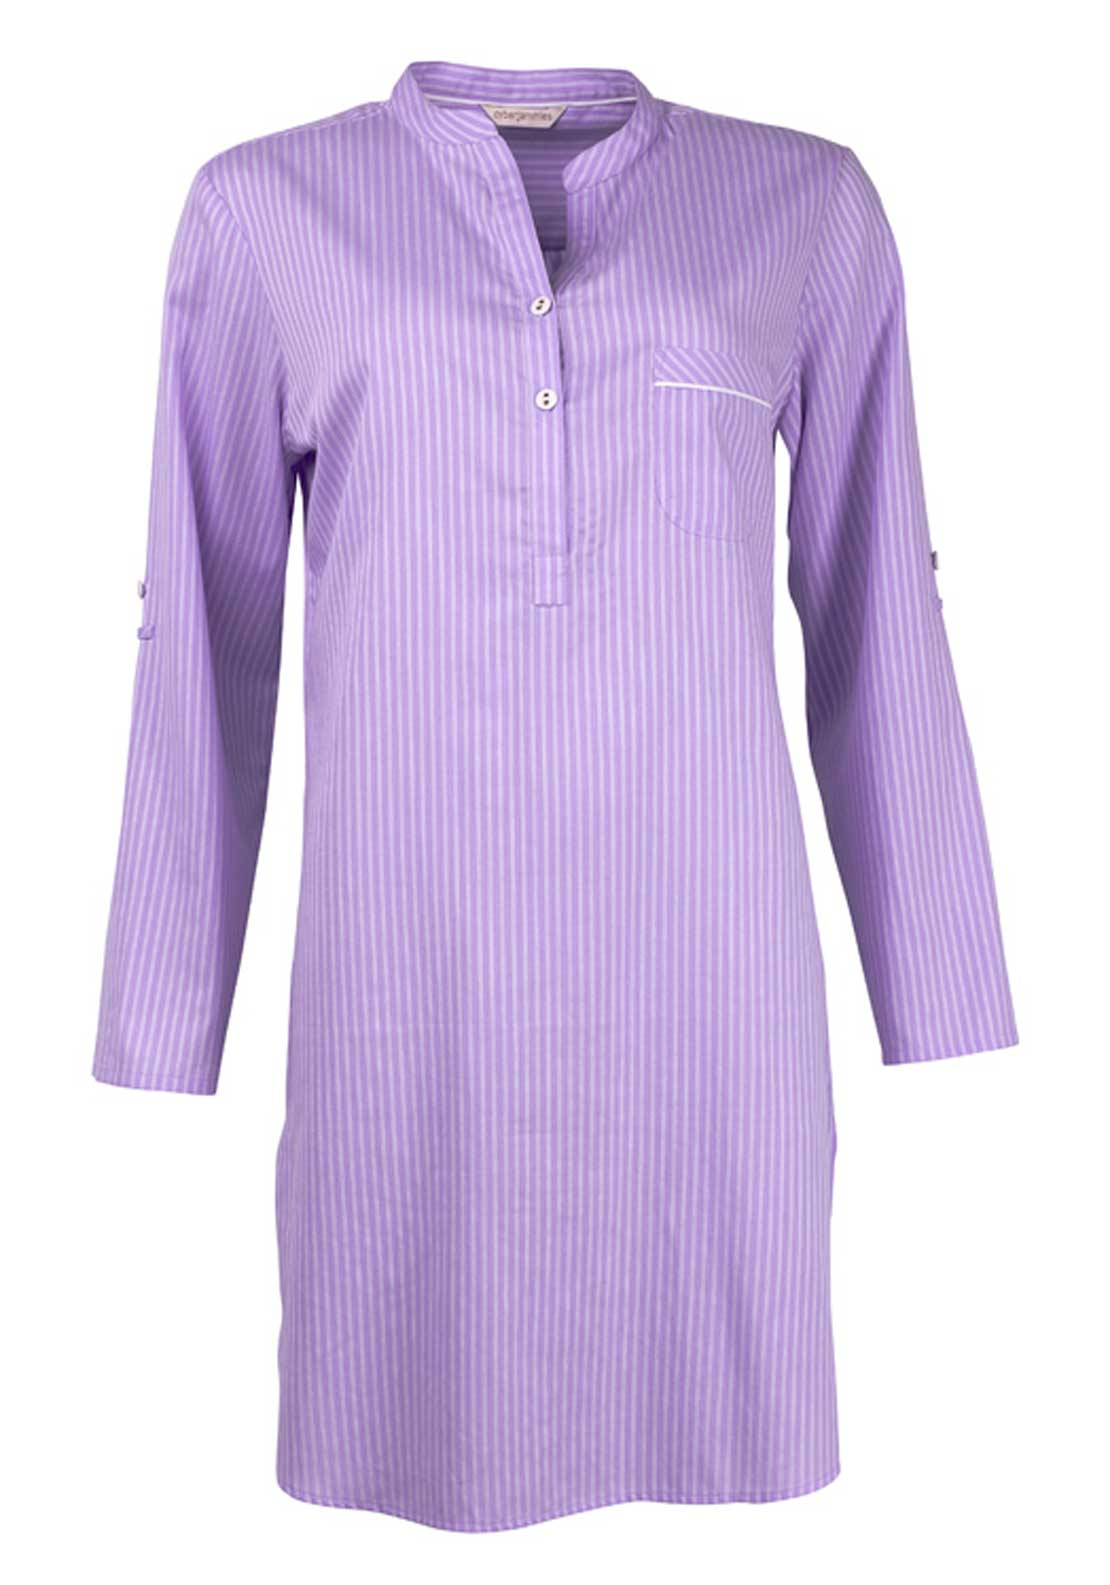 Cyberjammies Patchwork Aviary Striped Night Shirt, Lilac